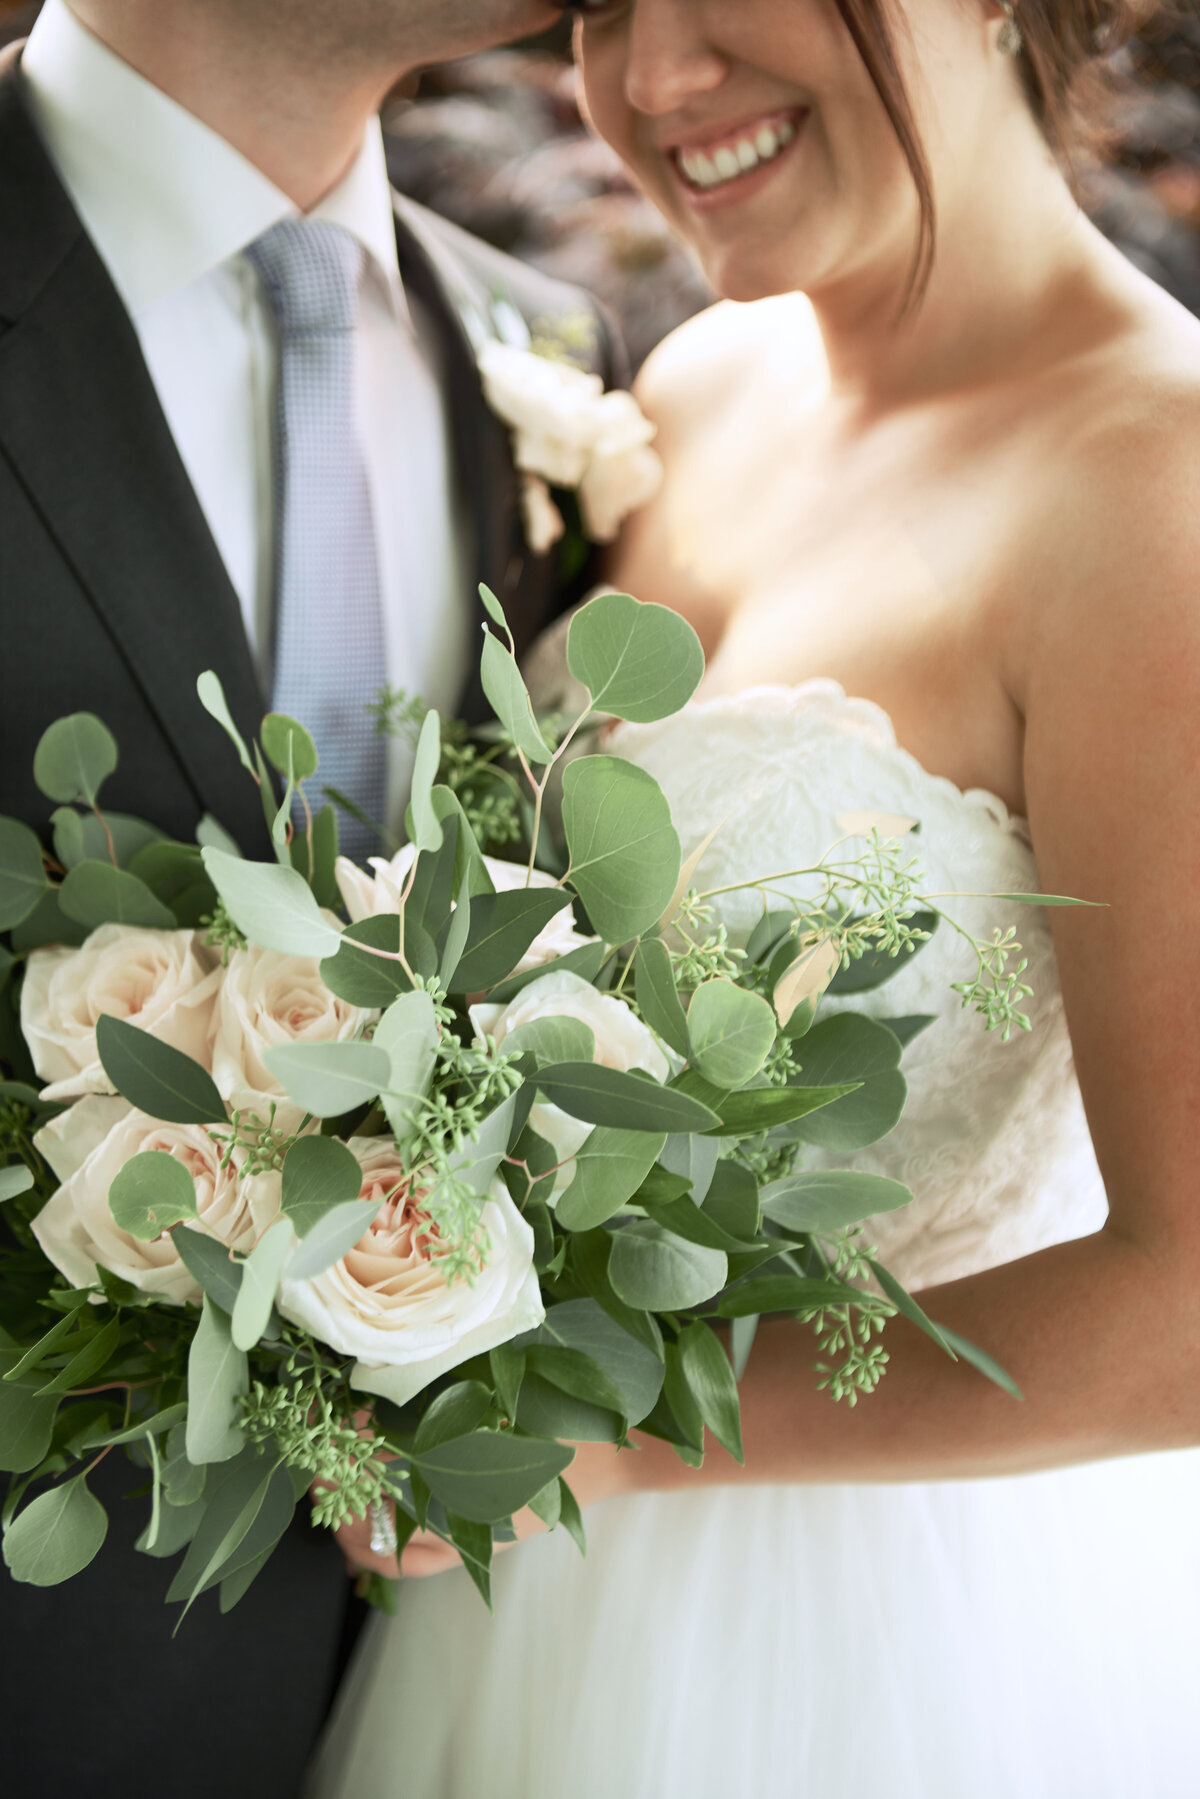 white-blush-greenery-wedding-bride-groom-bouquet-10